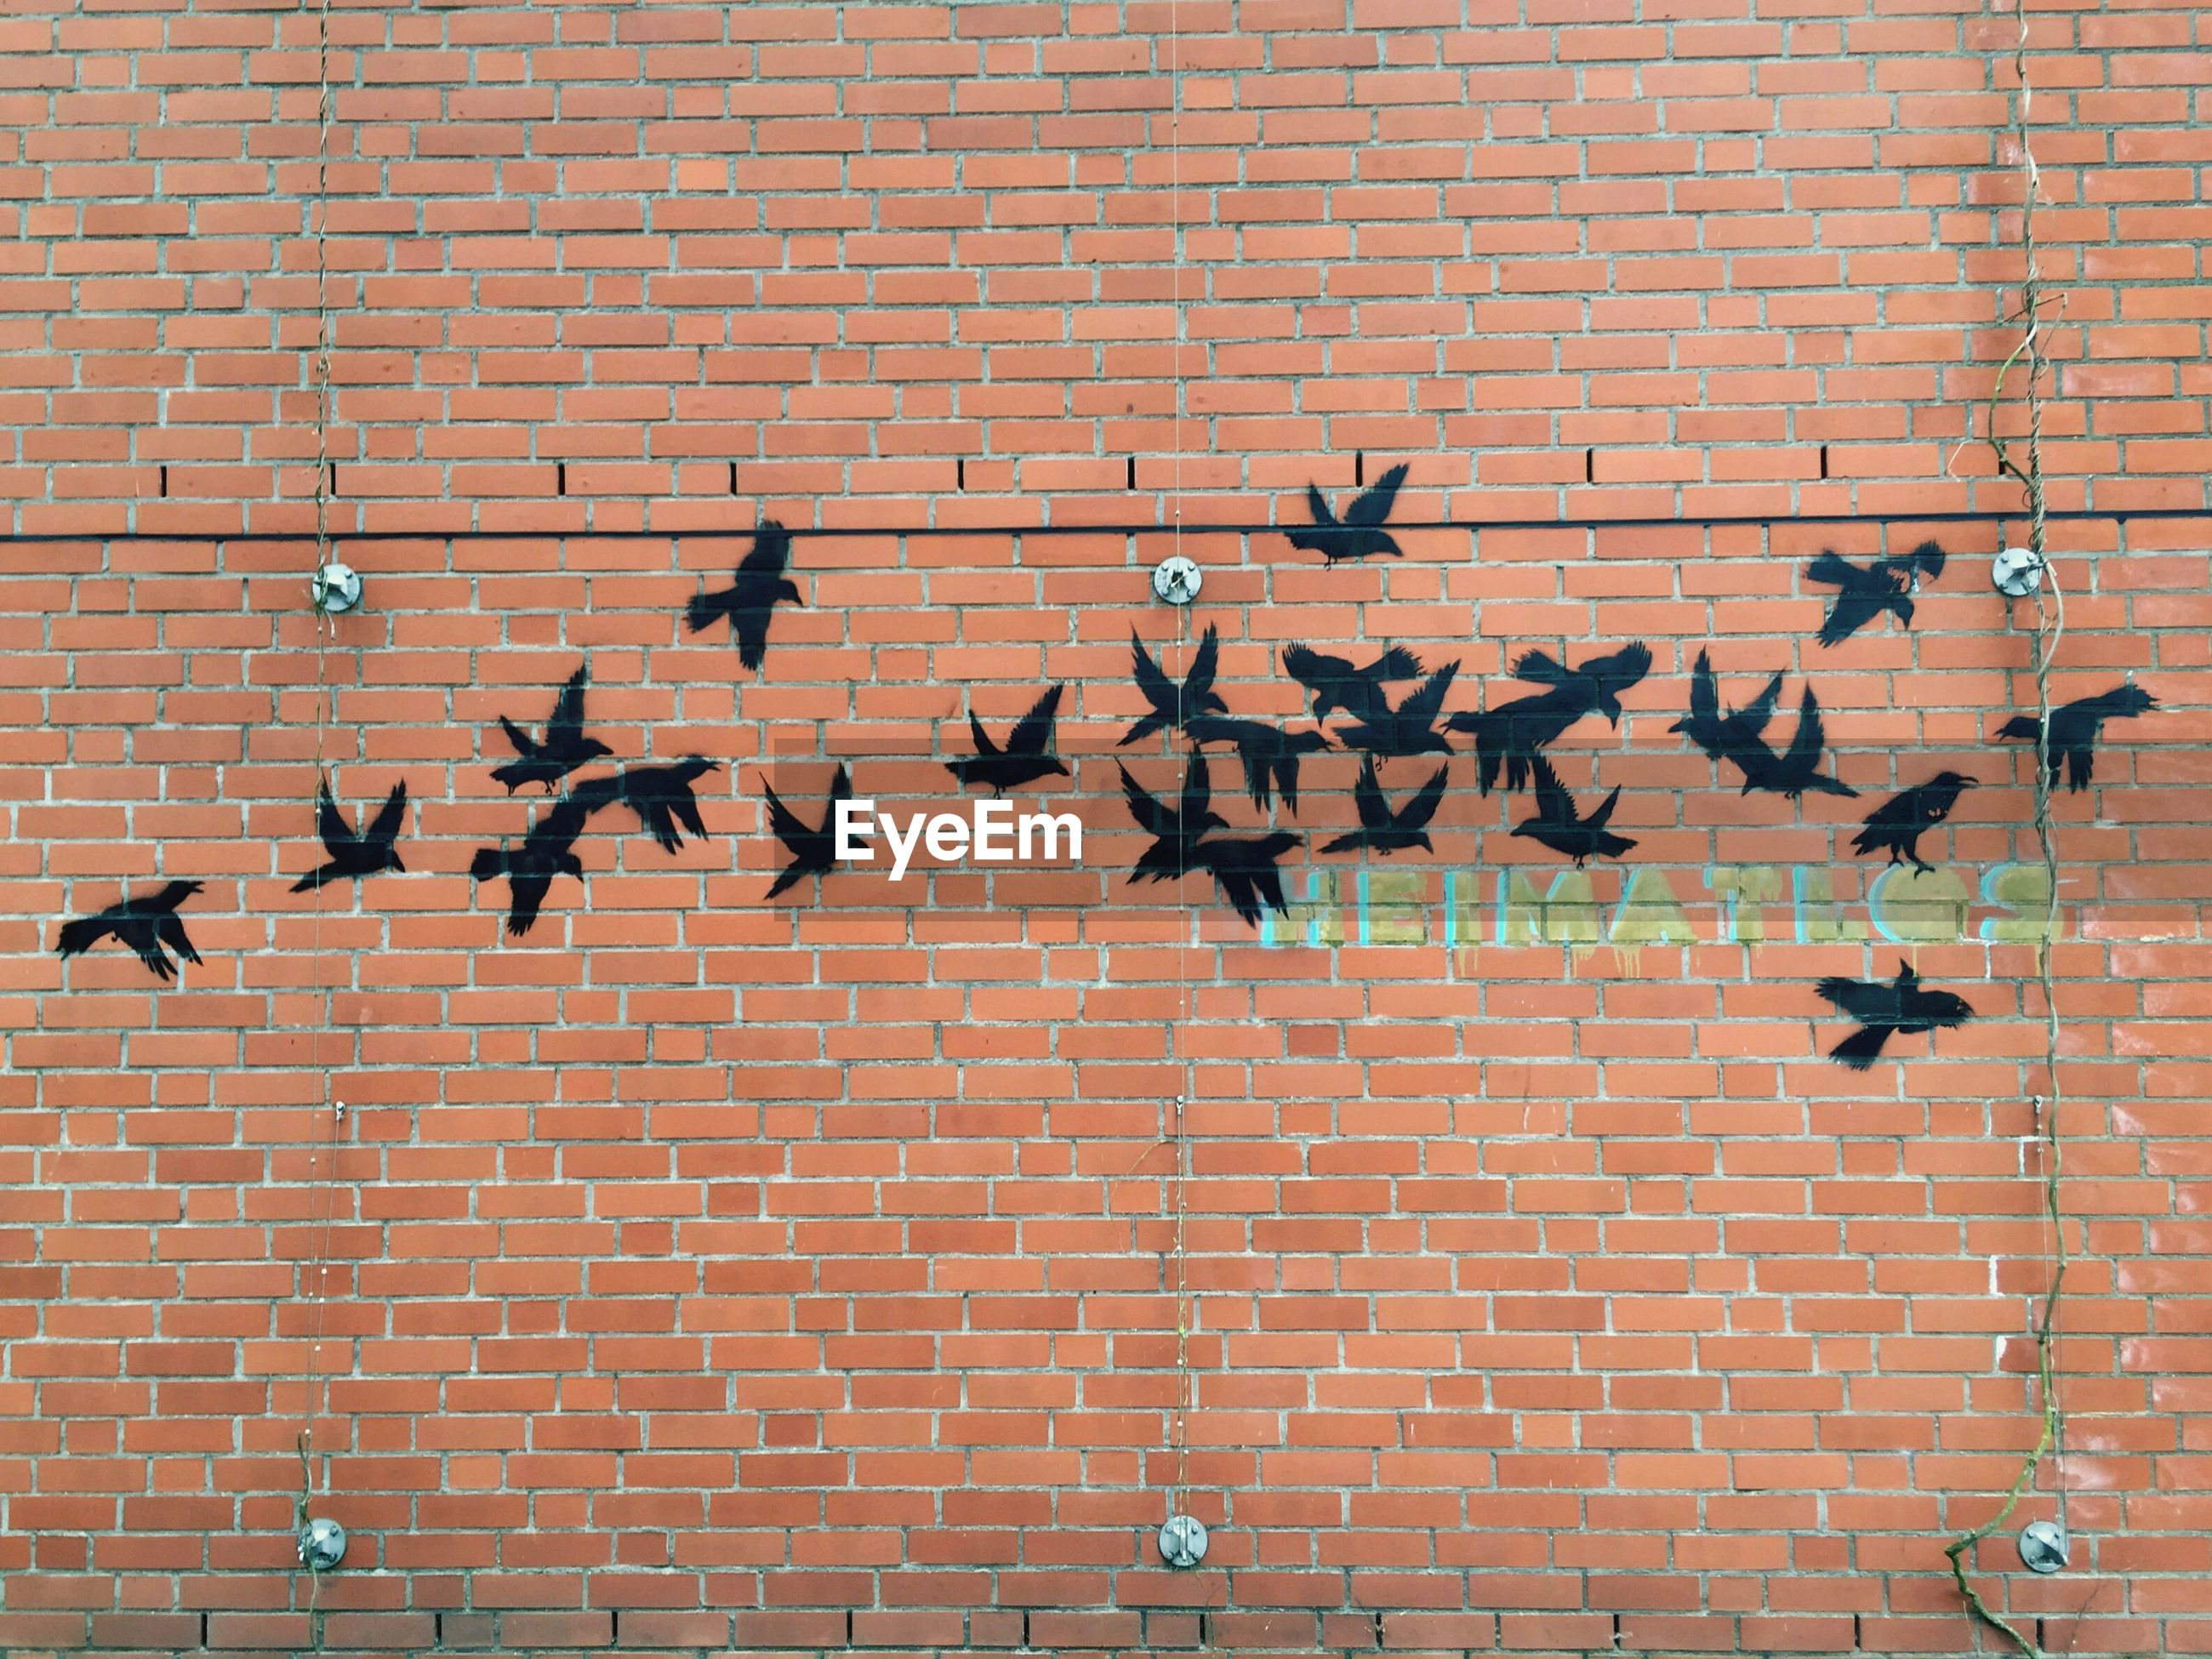 brick wall, bird, built structure, architecture, building exterior, wall - building feature, animal themes, full frame, wildlife, animals in the wild, backgrounds, brick, pattern, outdoors, flock of birds, day, red, pigeon, wall